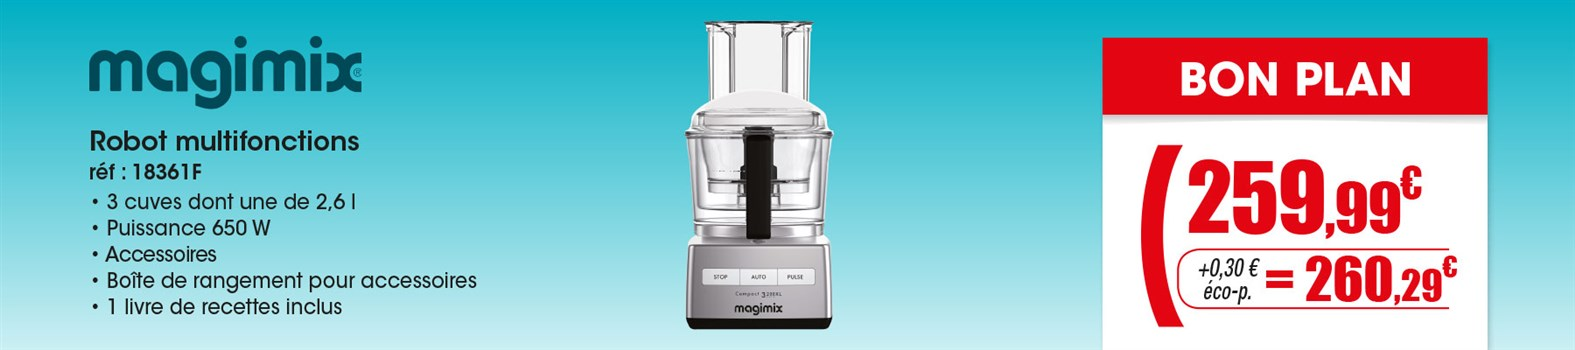 Robot multifonction Magimix 18361F